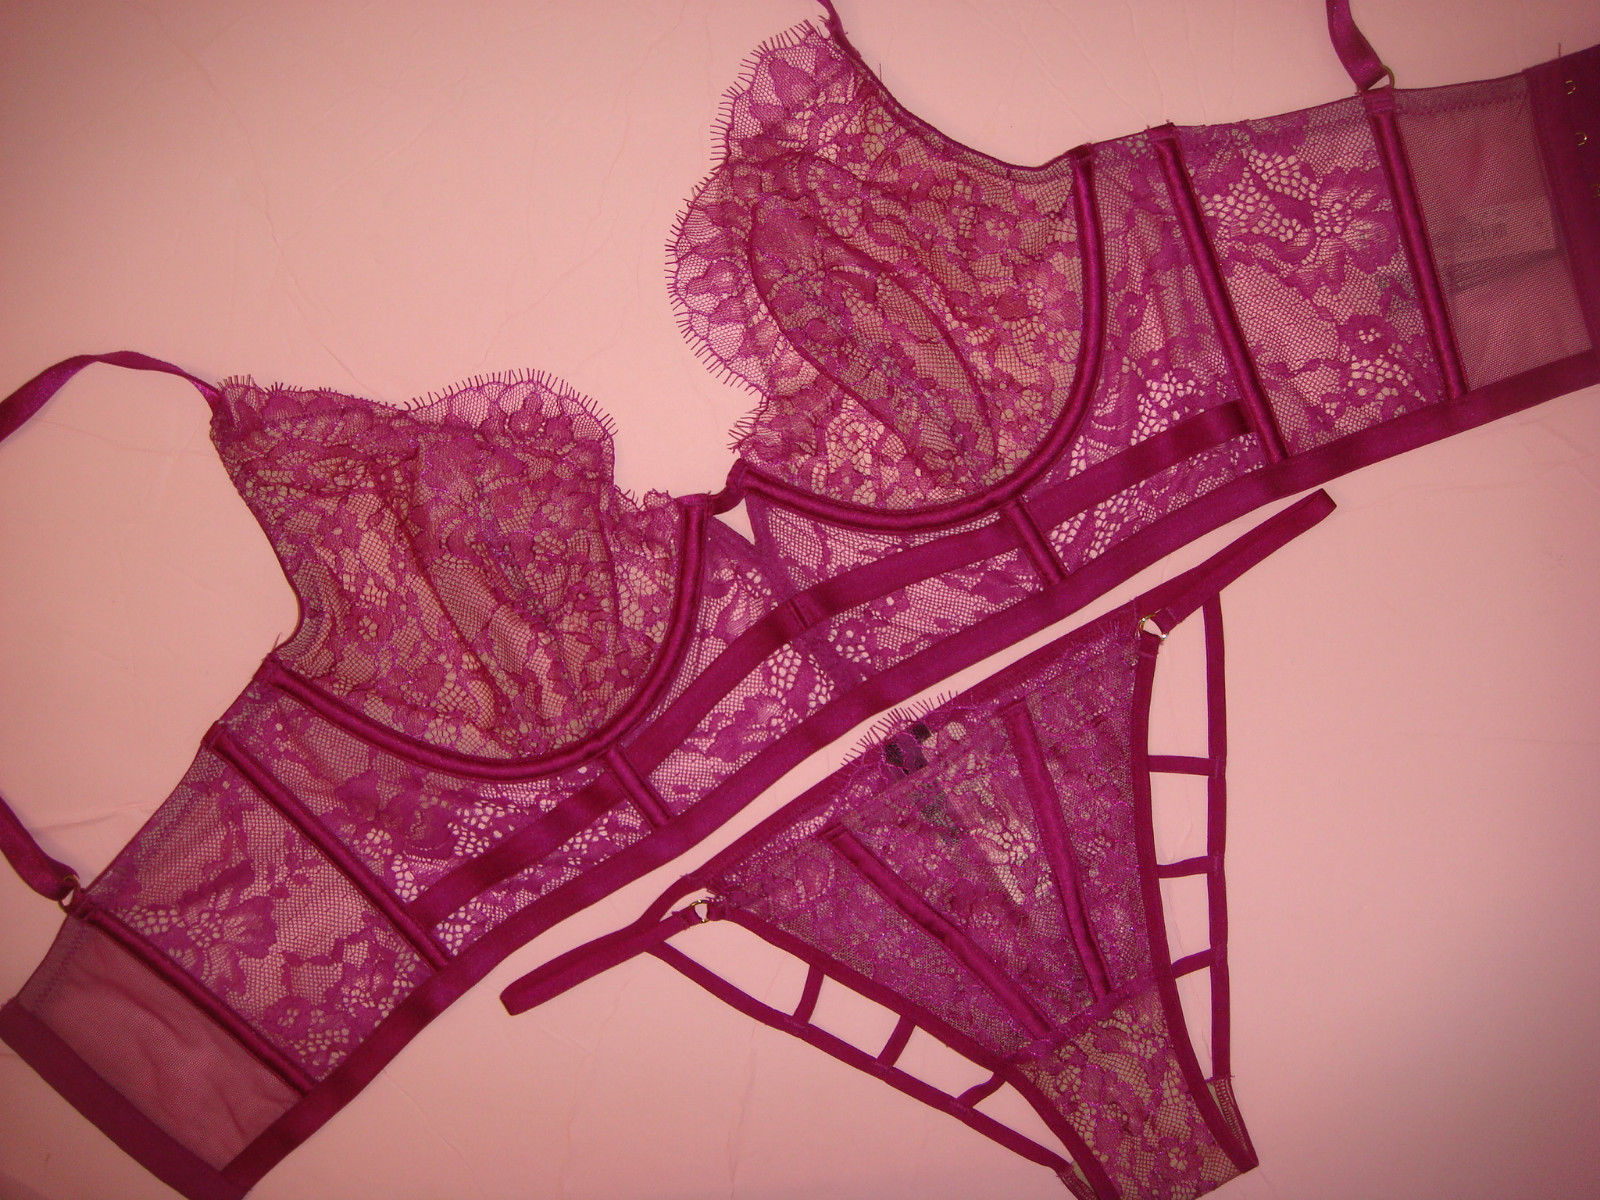 f9864bf24f0 S l1600. S l1600. Previous. Victoria s Secret unlined 34D BRA SET S